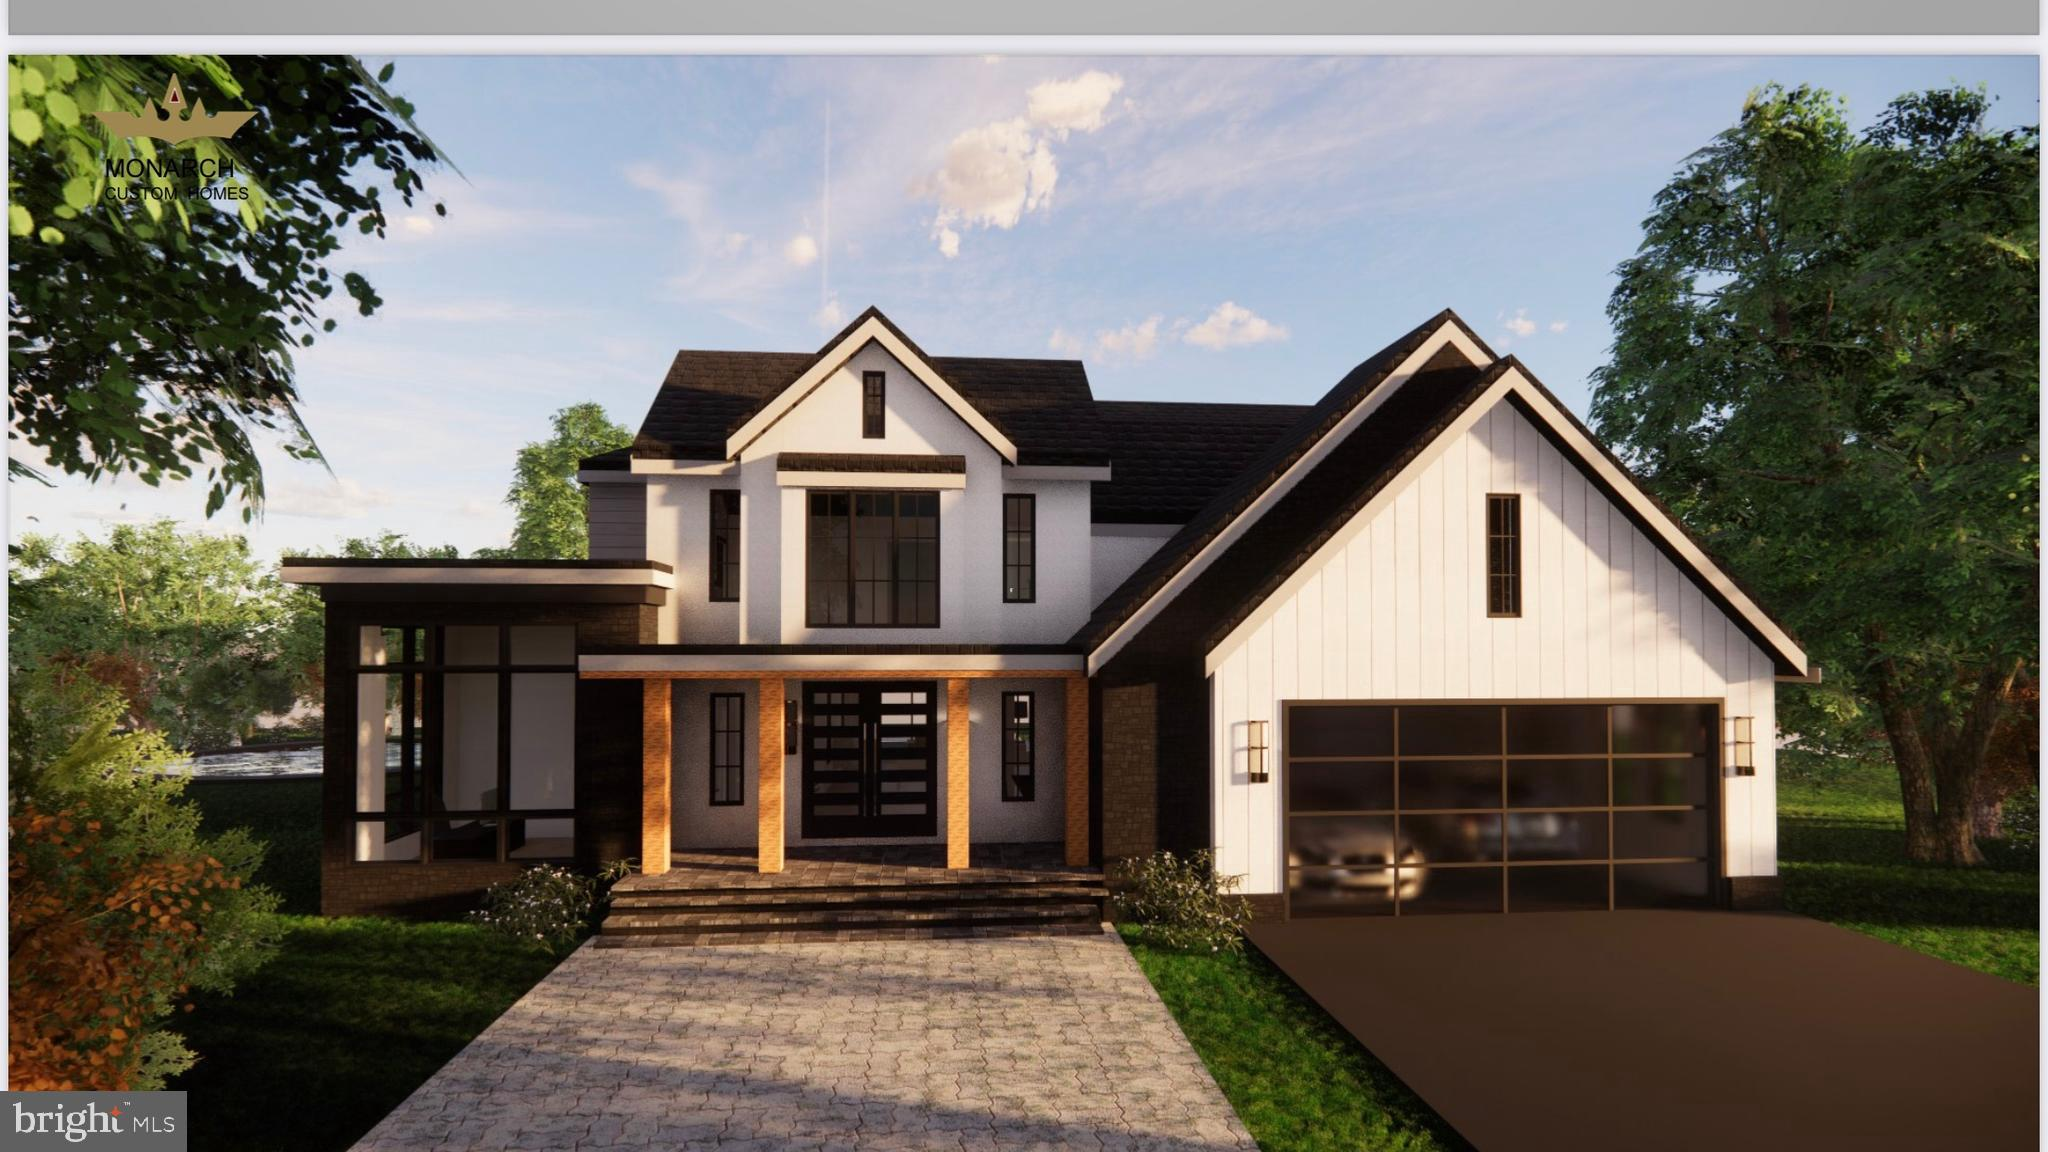 A Spectacular Modern Farmhouse by Monarch Construction will be built at the end of this quiet cul-de